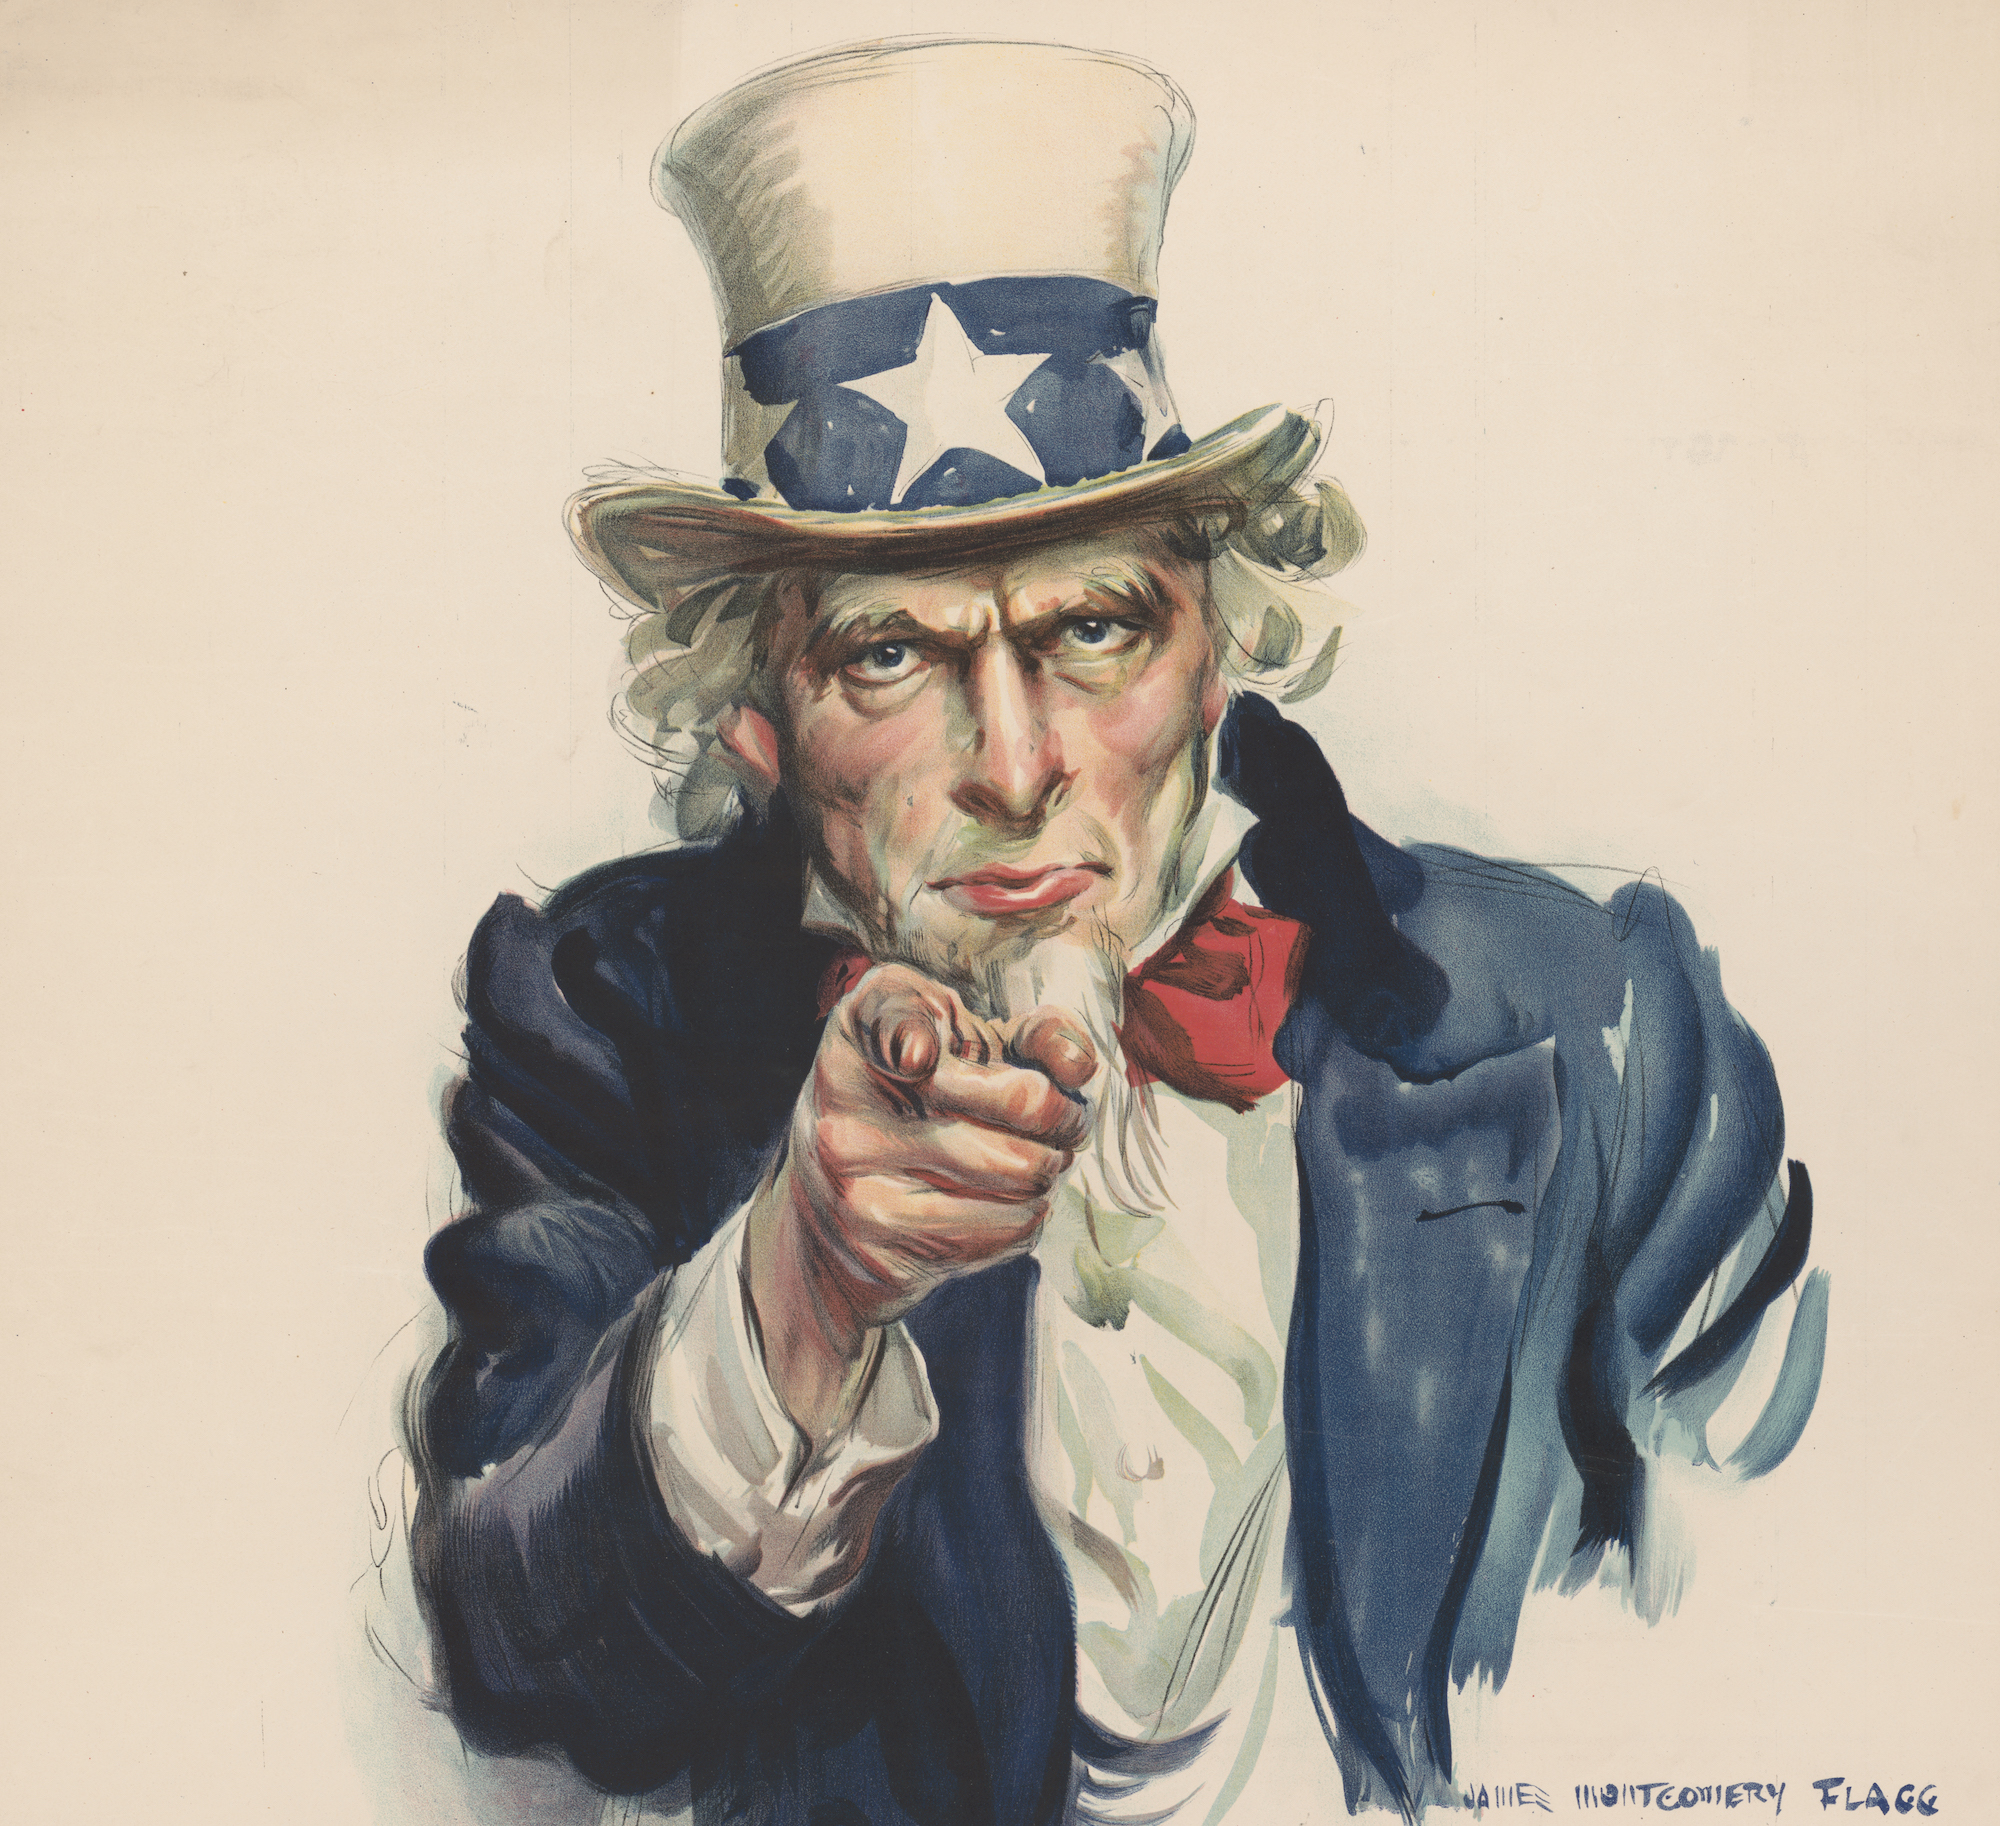 I want you for U.S. Army july 4th